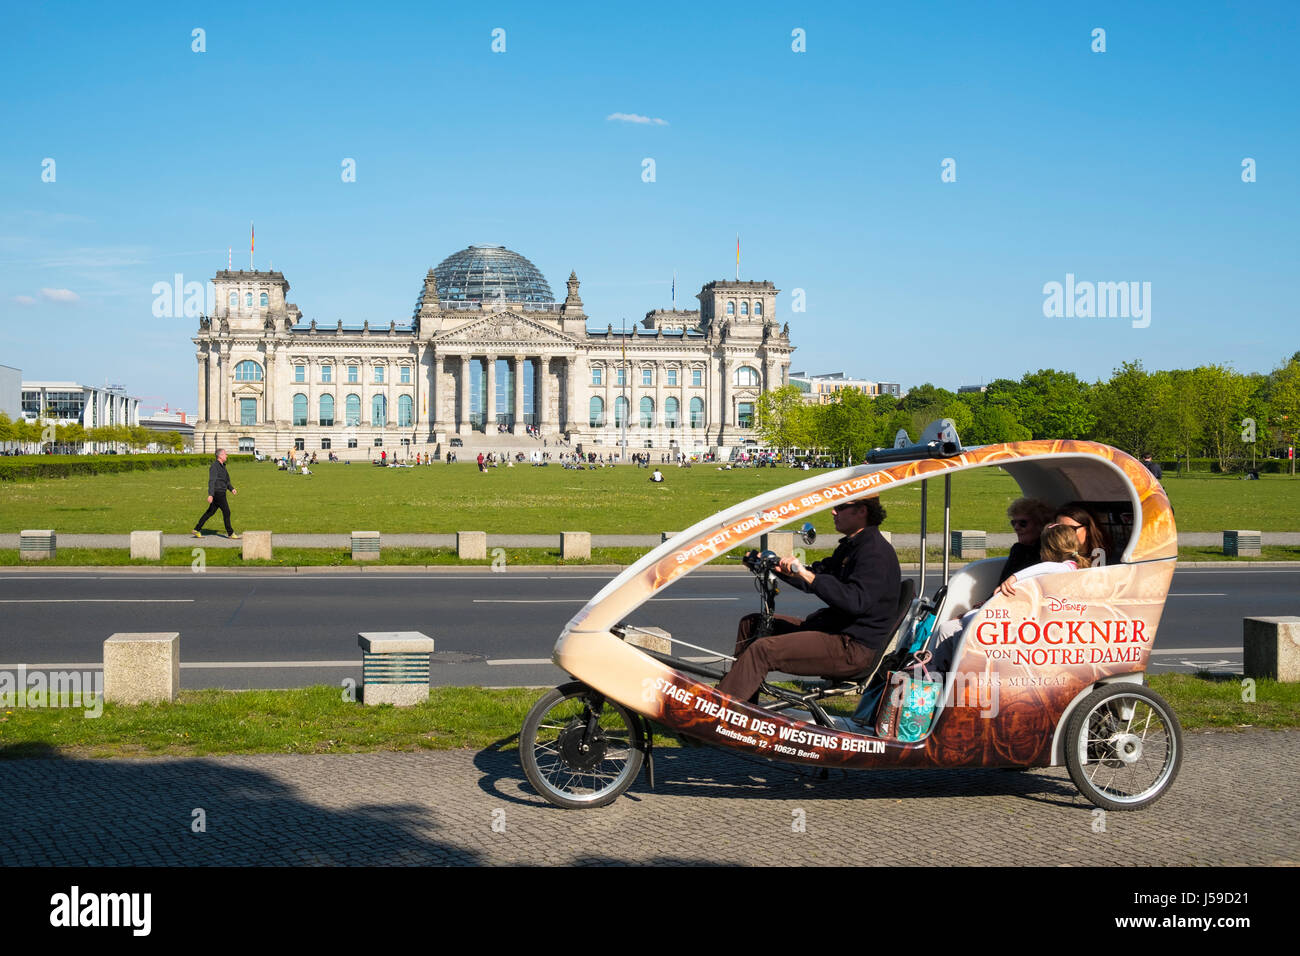 Tourist sightseeing rickshaw in front of the Reichstag in Berlin, Germany - Stock Image